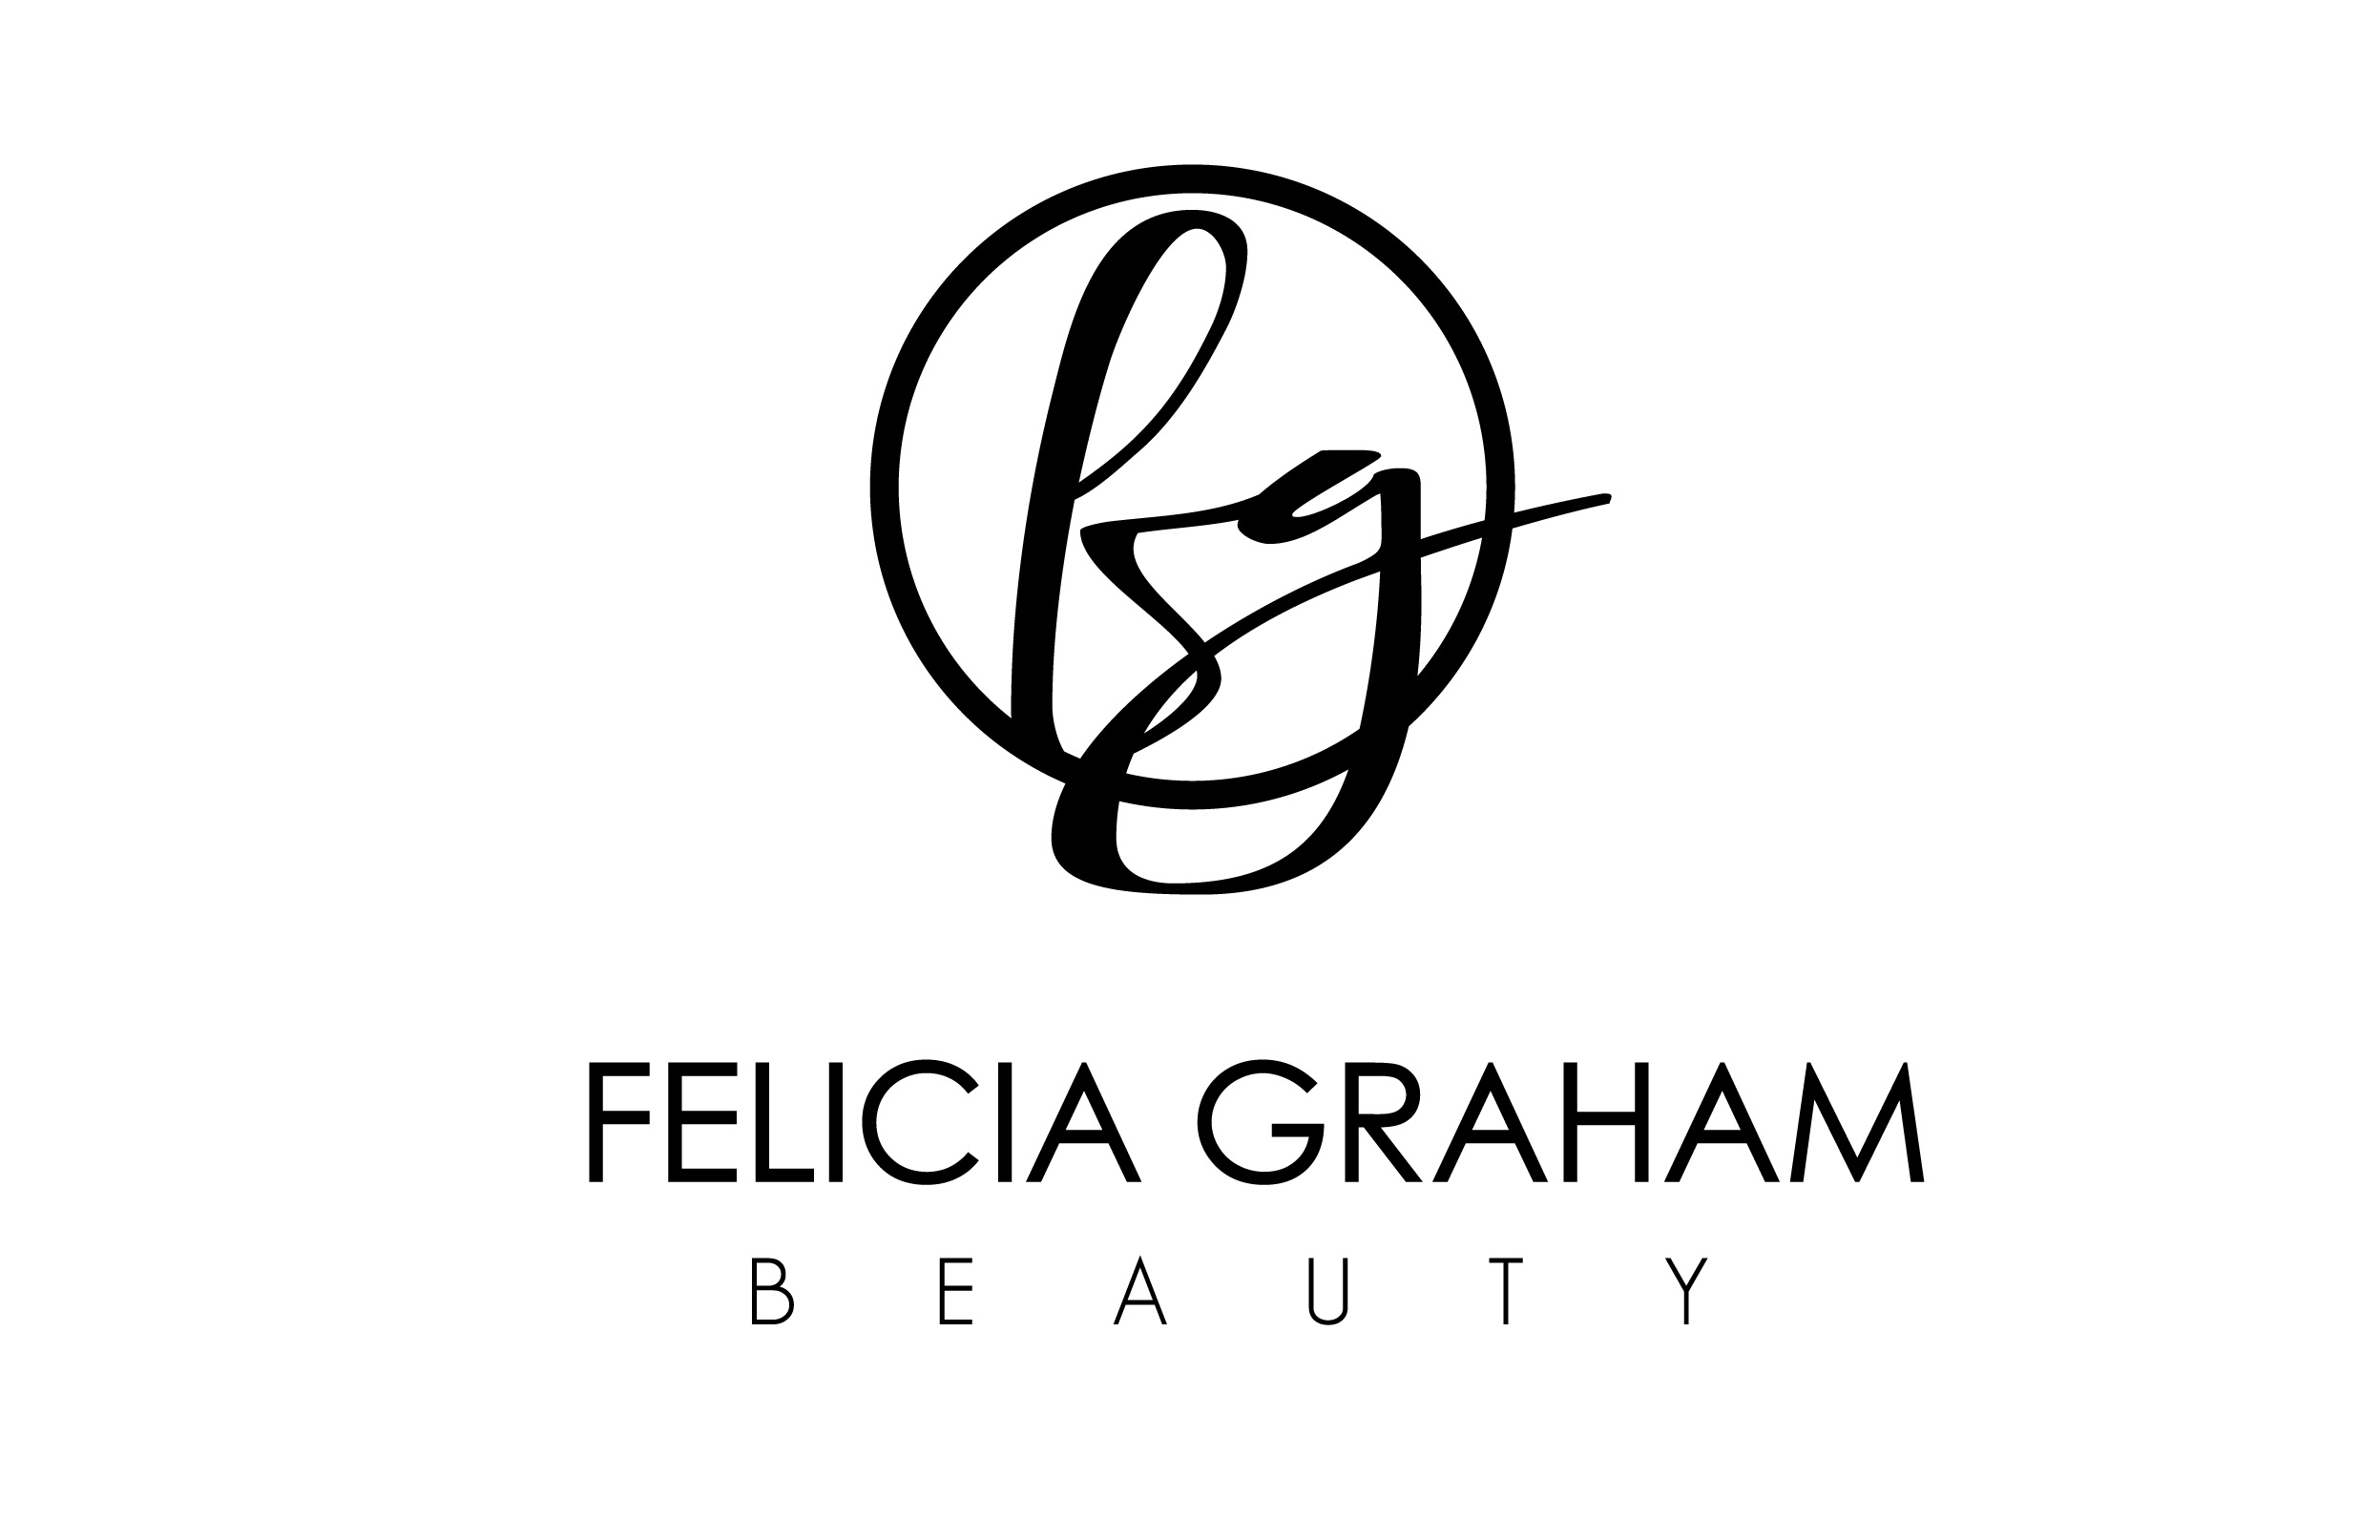 Felicia Graham Beauty